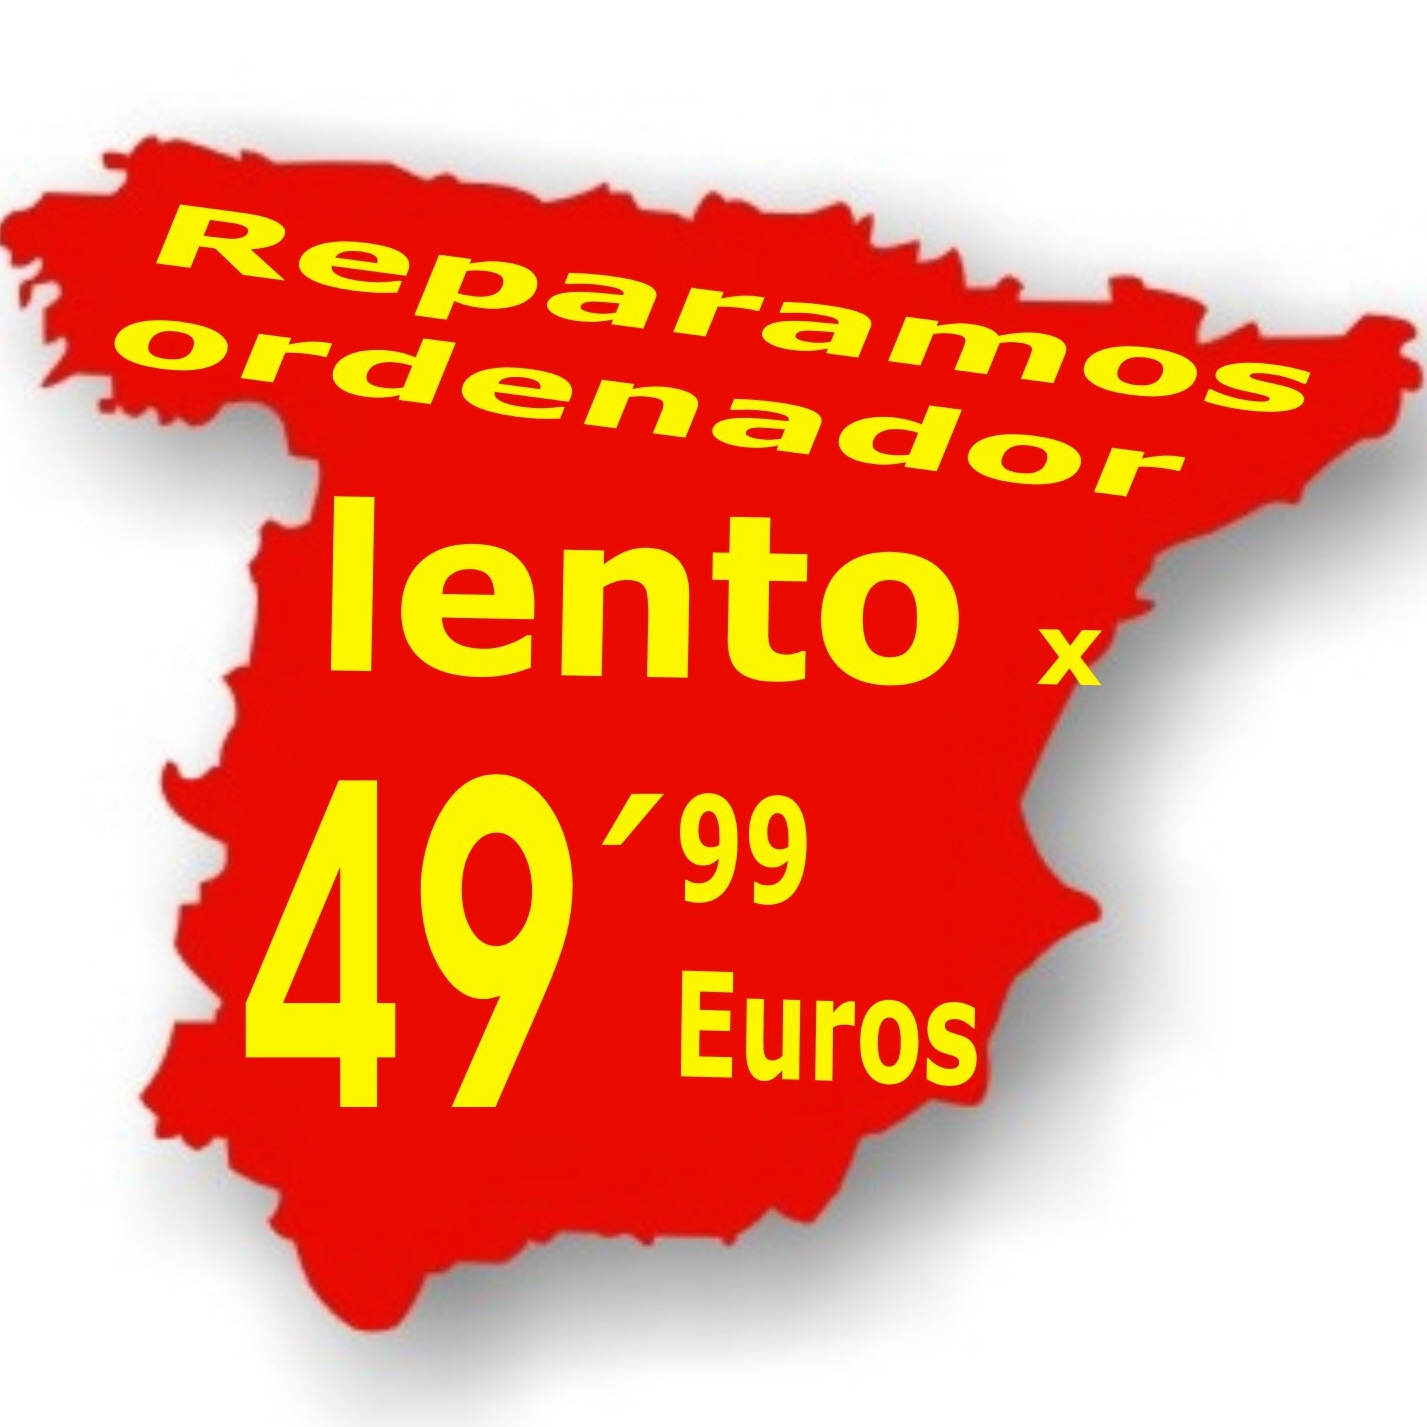 reparar quitar-remover-virus-ordenador-lento-en-madrid-calle-santa-maria-naranco-villanueva-del-pardillo-barcelona-sevilla-arreglar-windows-xp-vista-7-8-10-acelerar-internet-optimizar-portatil-limpiar-pc